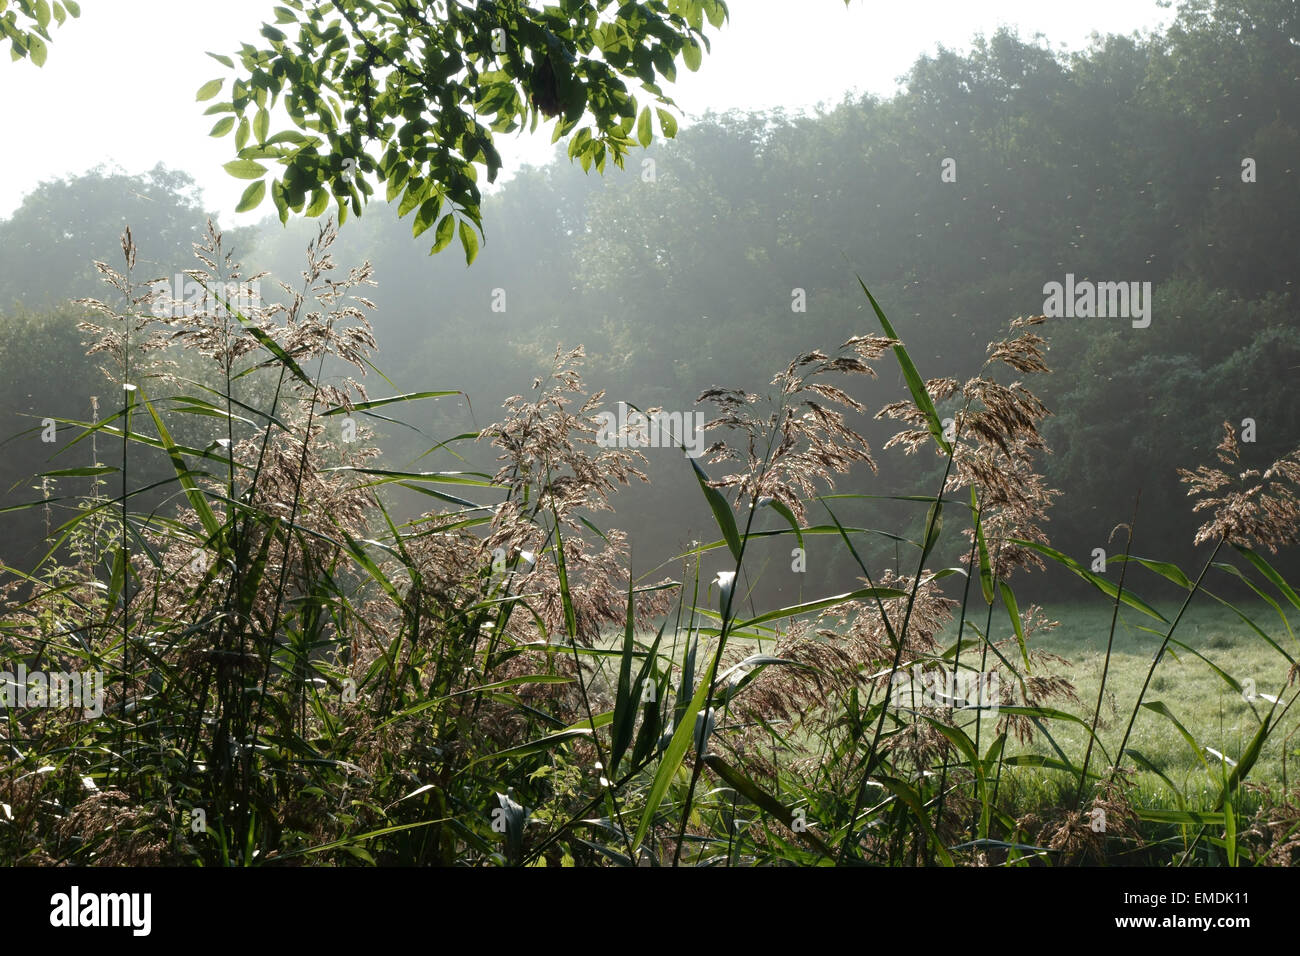 Common reed, Fragmites communis, flowering on the banks of the  Kennet & Avon Canal on misty late summer morning - Stock Image